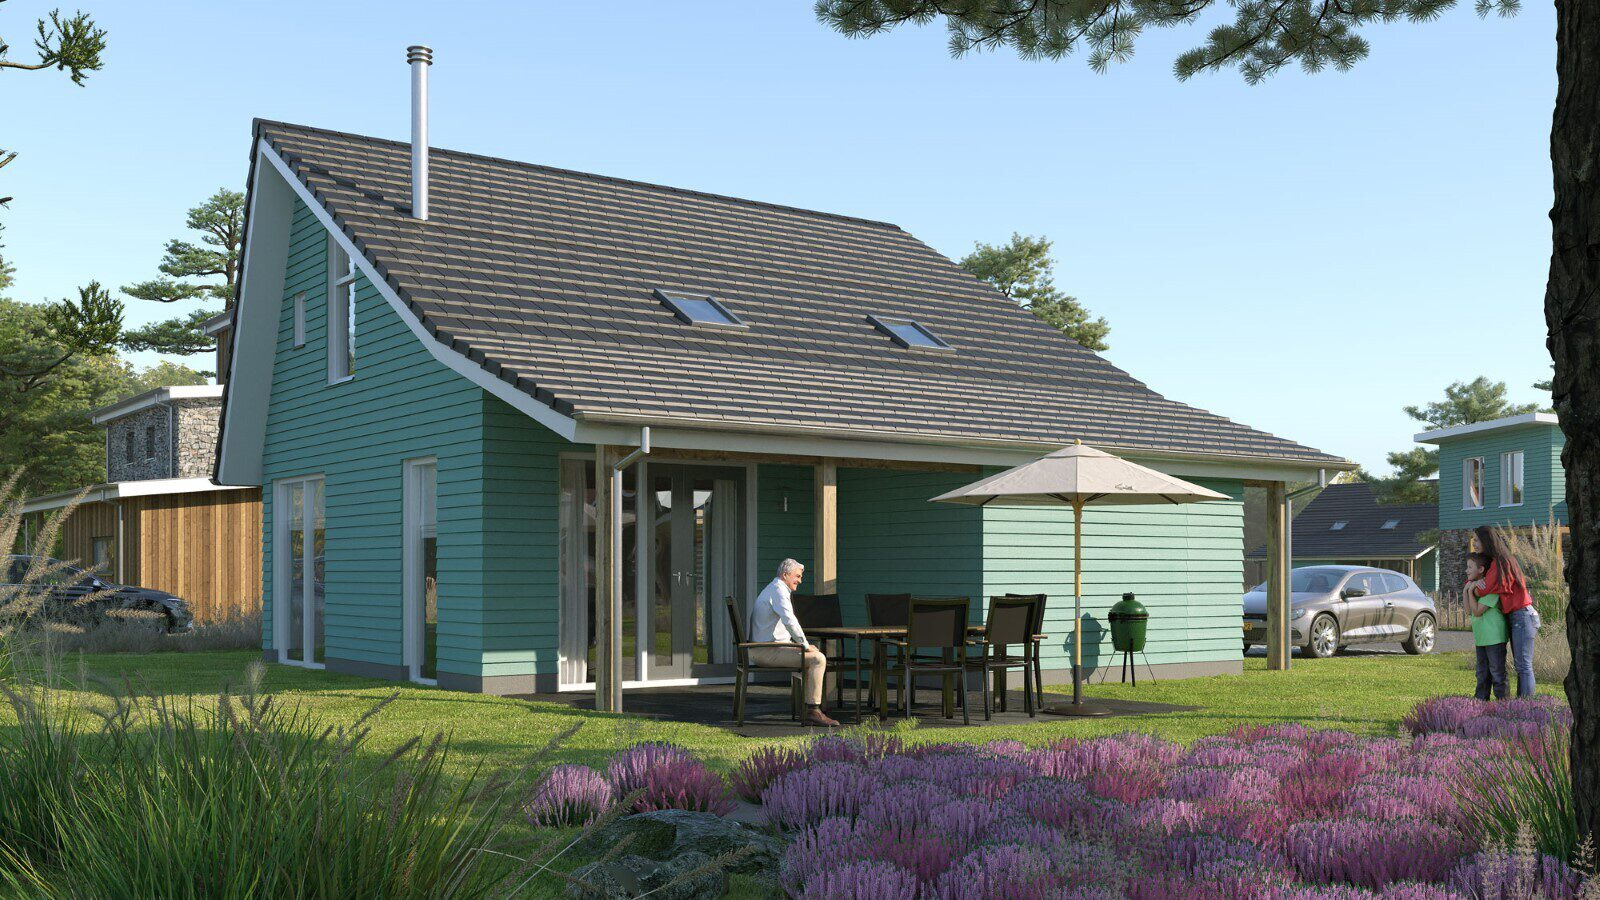 4 good reasons to buy a holiday home